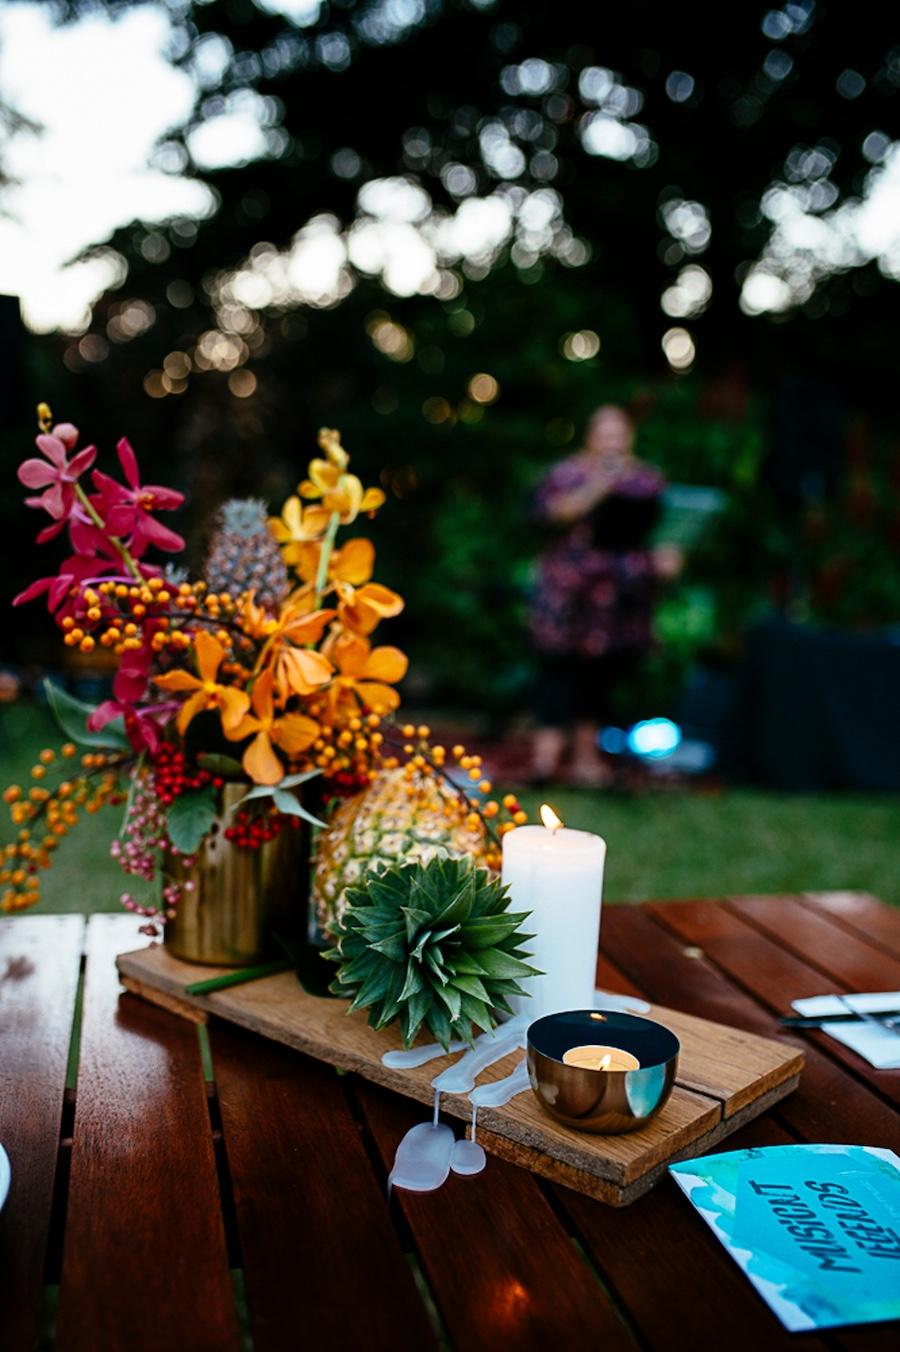 tropical flowers, pineapples and candlelight